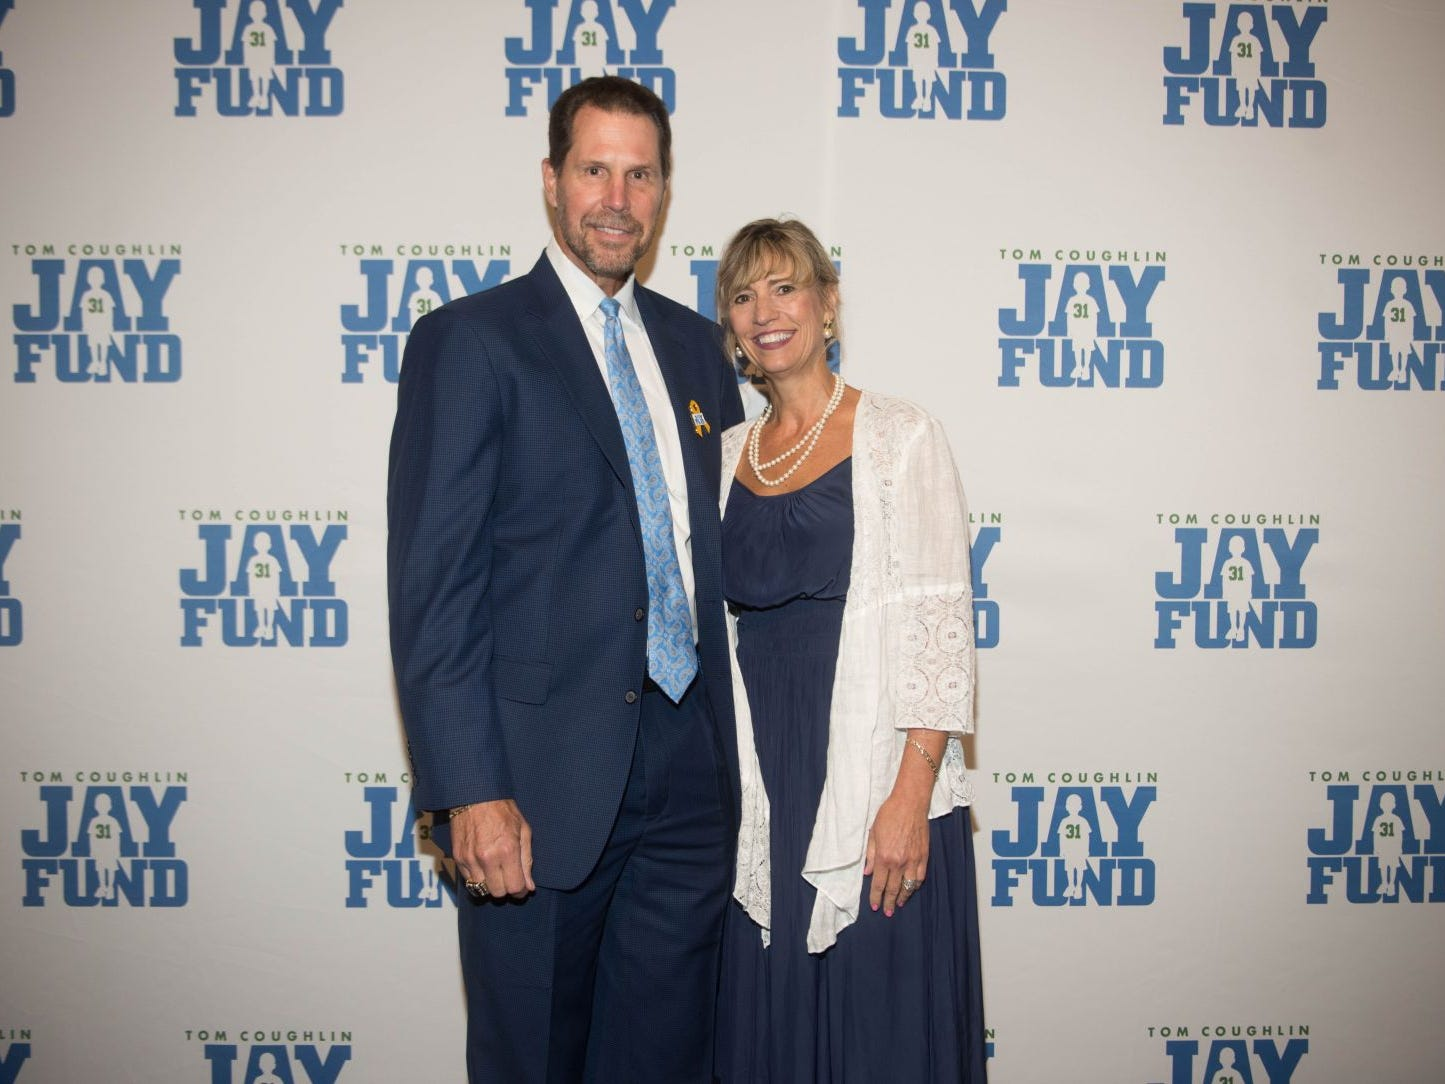 Karl Nelson and Inga Nelson. The 14th annual Jay Fund Champions for Children Gala was held at Cipriani 42nd Street. 09/21/2018